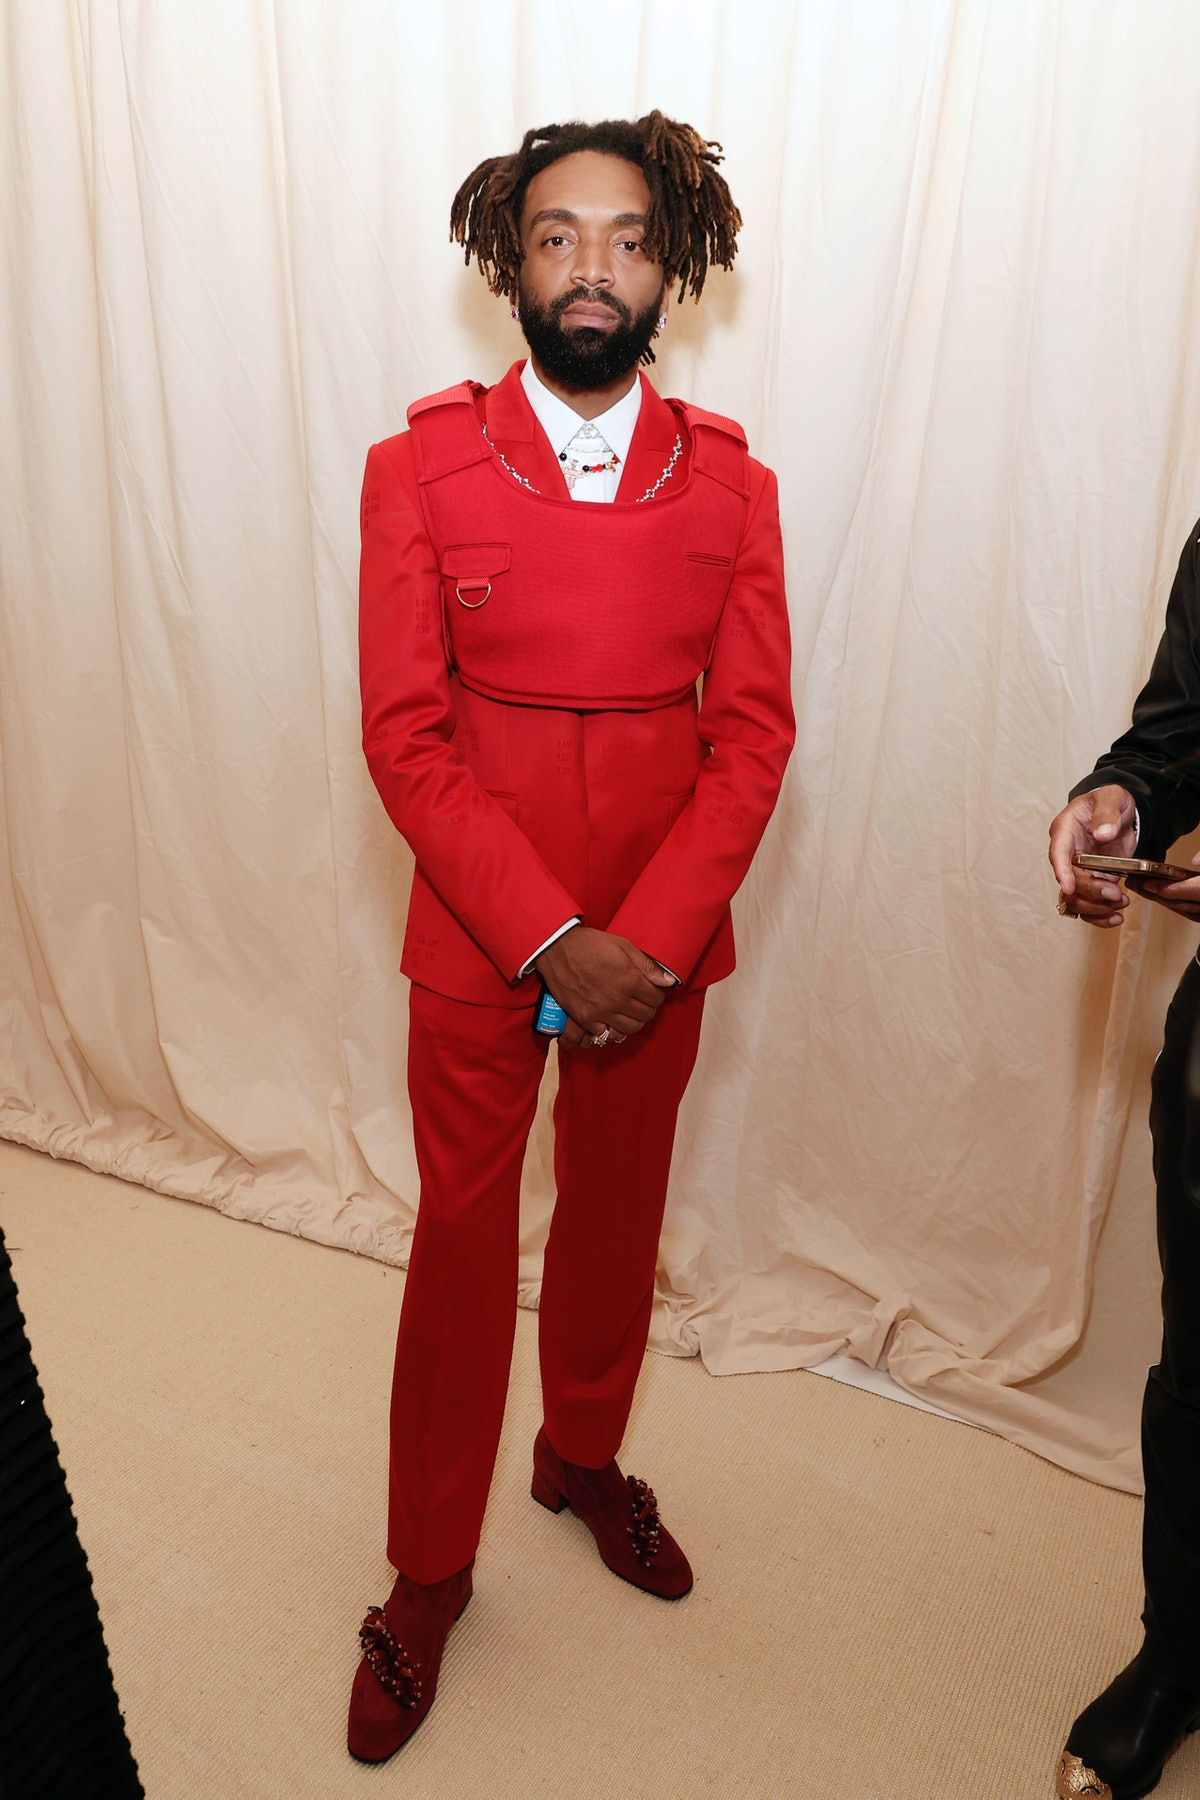 Kerby Jean-Raymond attends The 2021 Met Gala Celebrating In America: A Lexicon Of Fashion at Metropo...